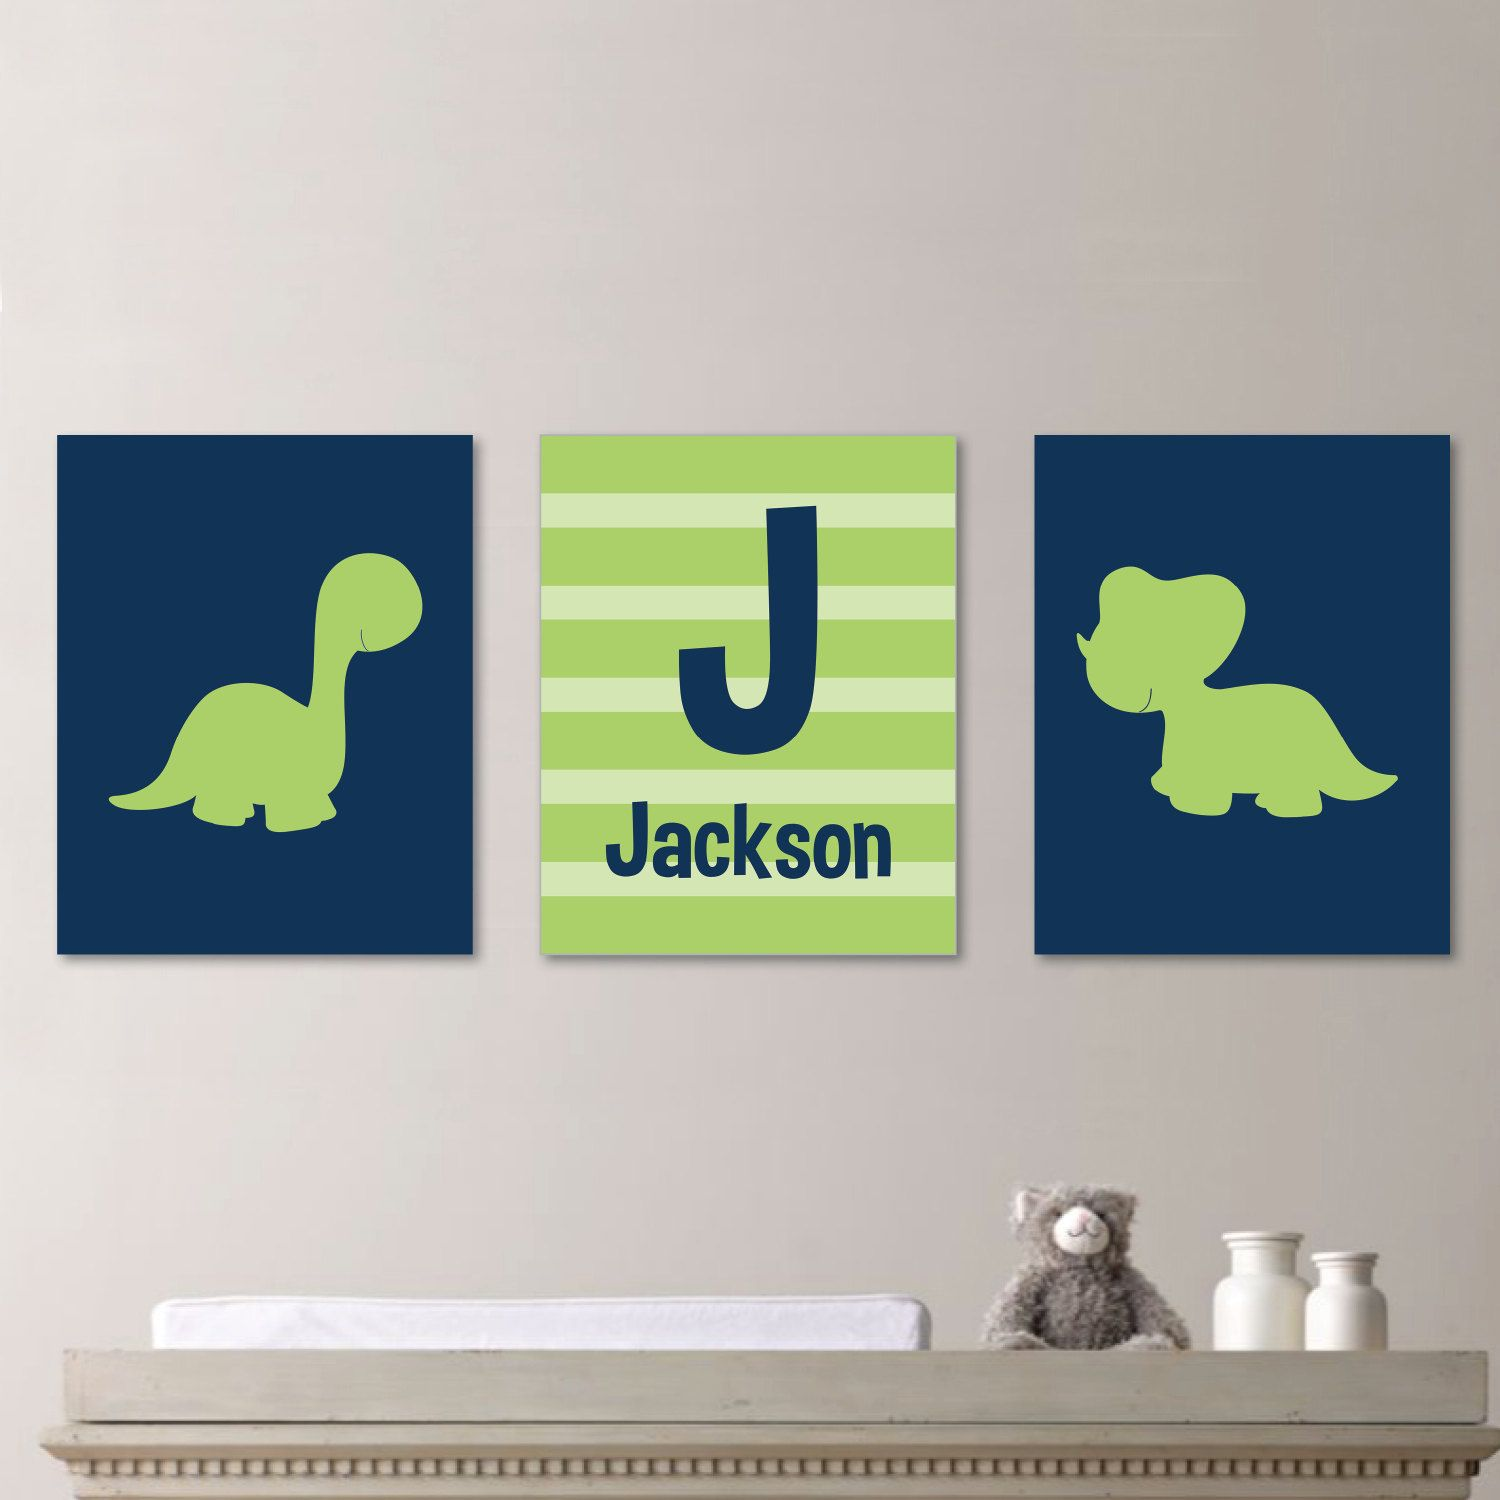 Baby Boy Nursery Art - Dinosaur Nursery Art - Dinosaur Nursery Print - Dinosaur Bedroom Art - Custom Name Print - Green Navy Blue (NS-190)